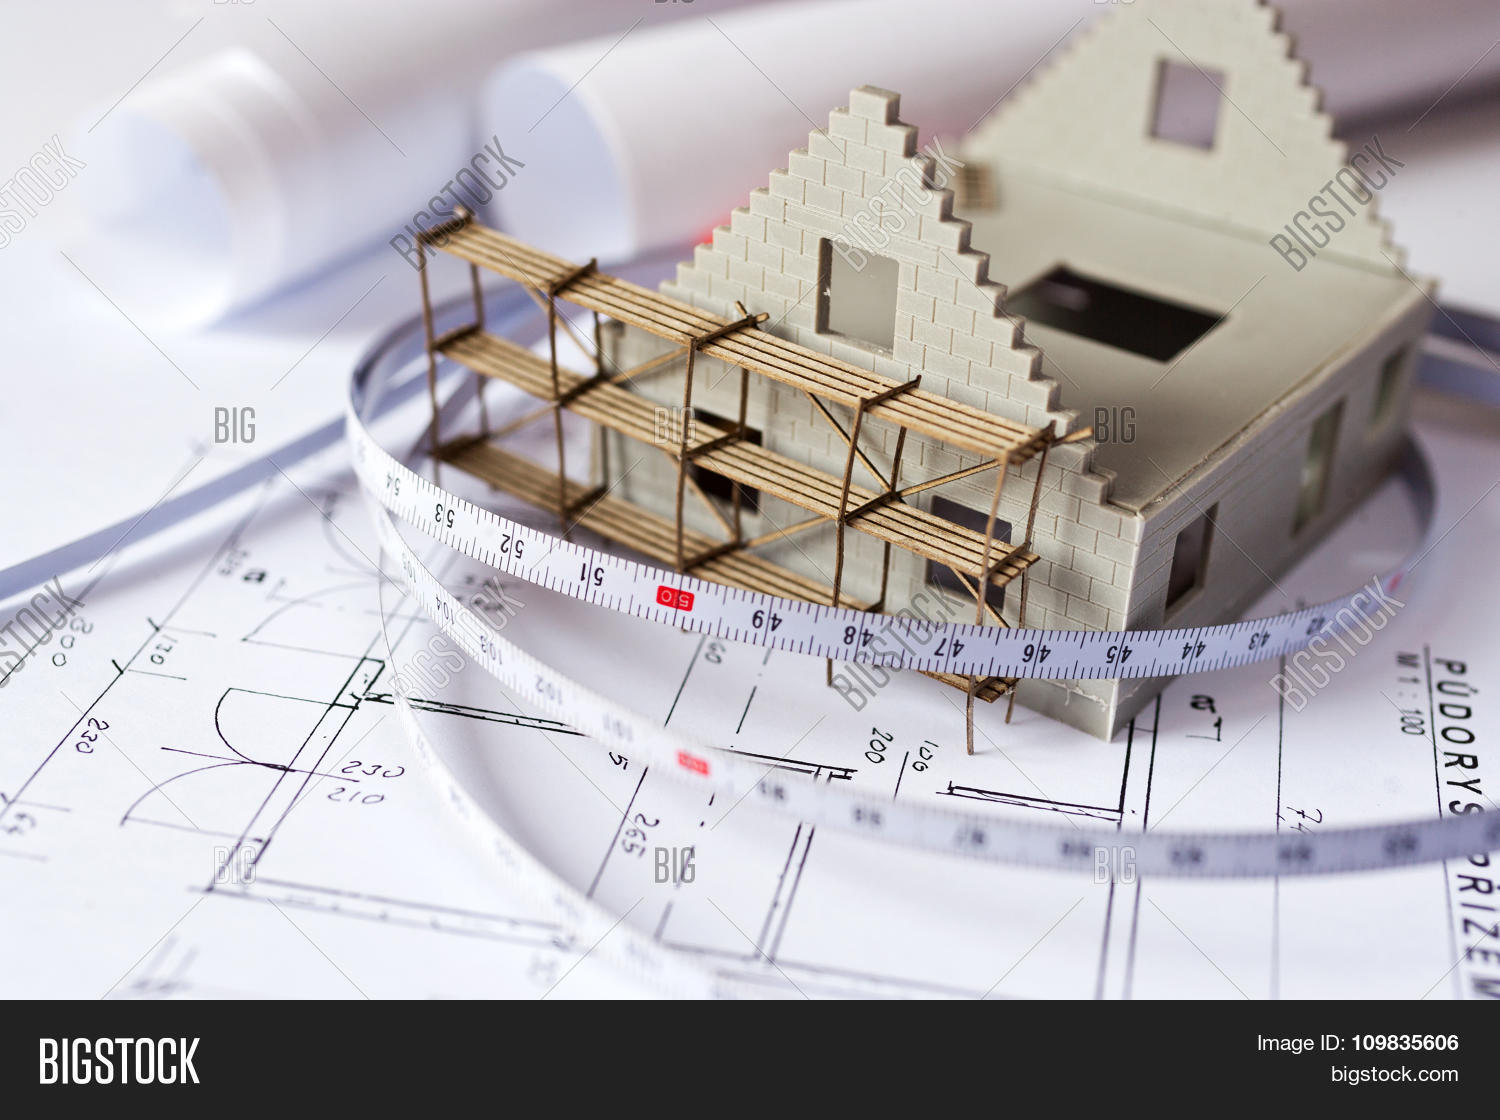 New model house image photo free trial bigstock new model house with scaffolding on architecture blueprint plan at desk construction site malvernweather Image collections